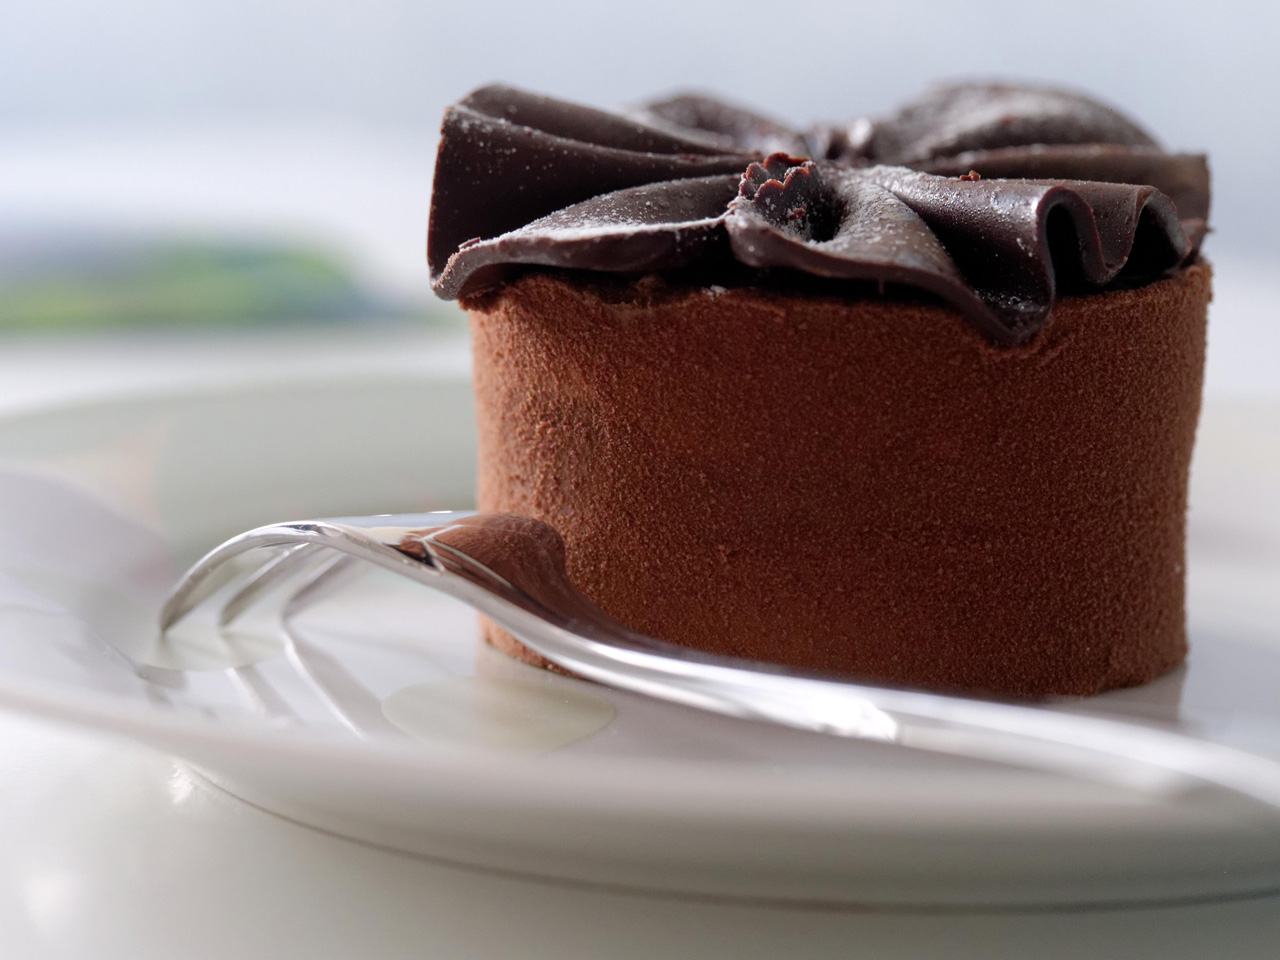 chocolate cake on white plate